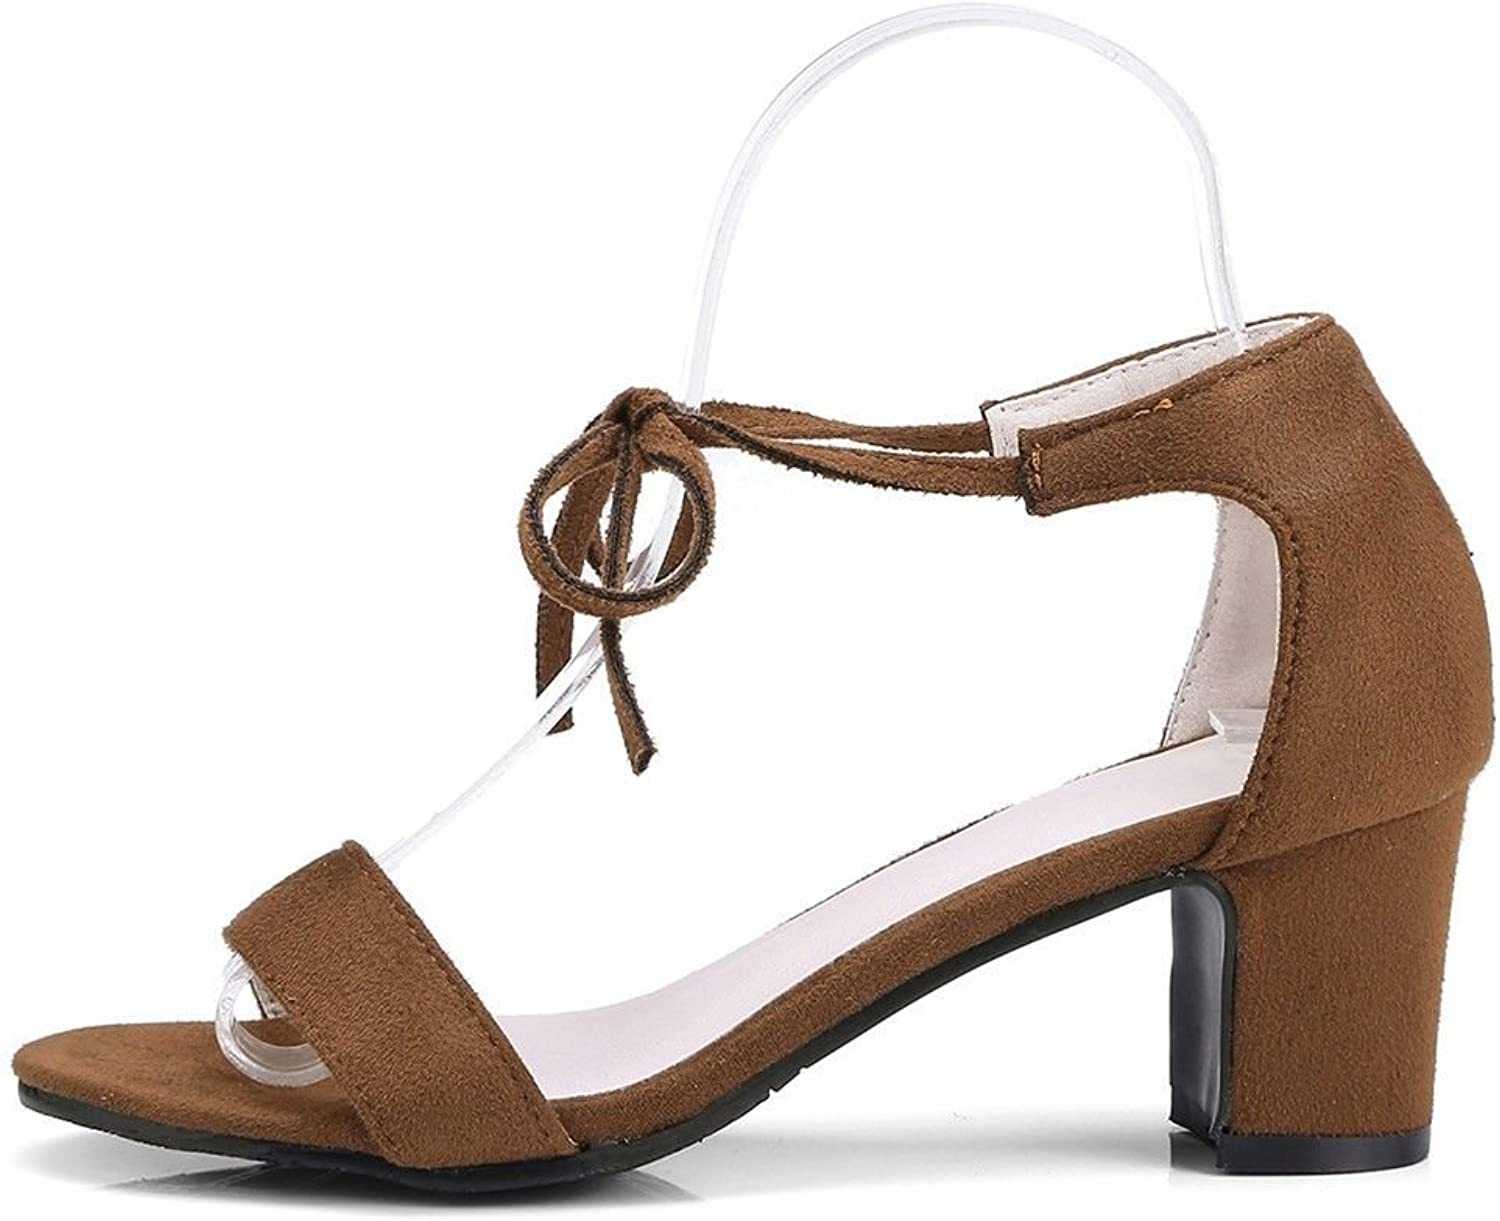 Ms. Summer Sandals, with Stylish Wedding Ankle Strap Sandals